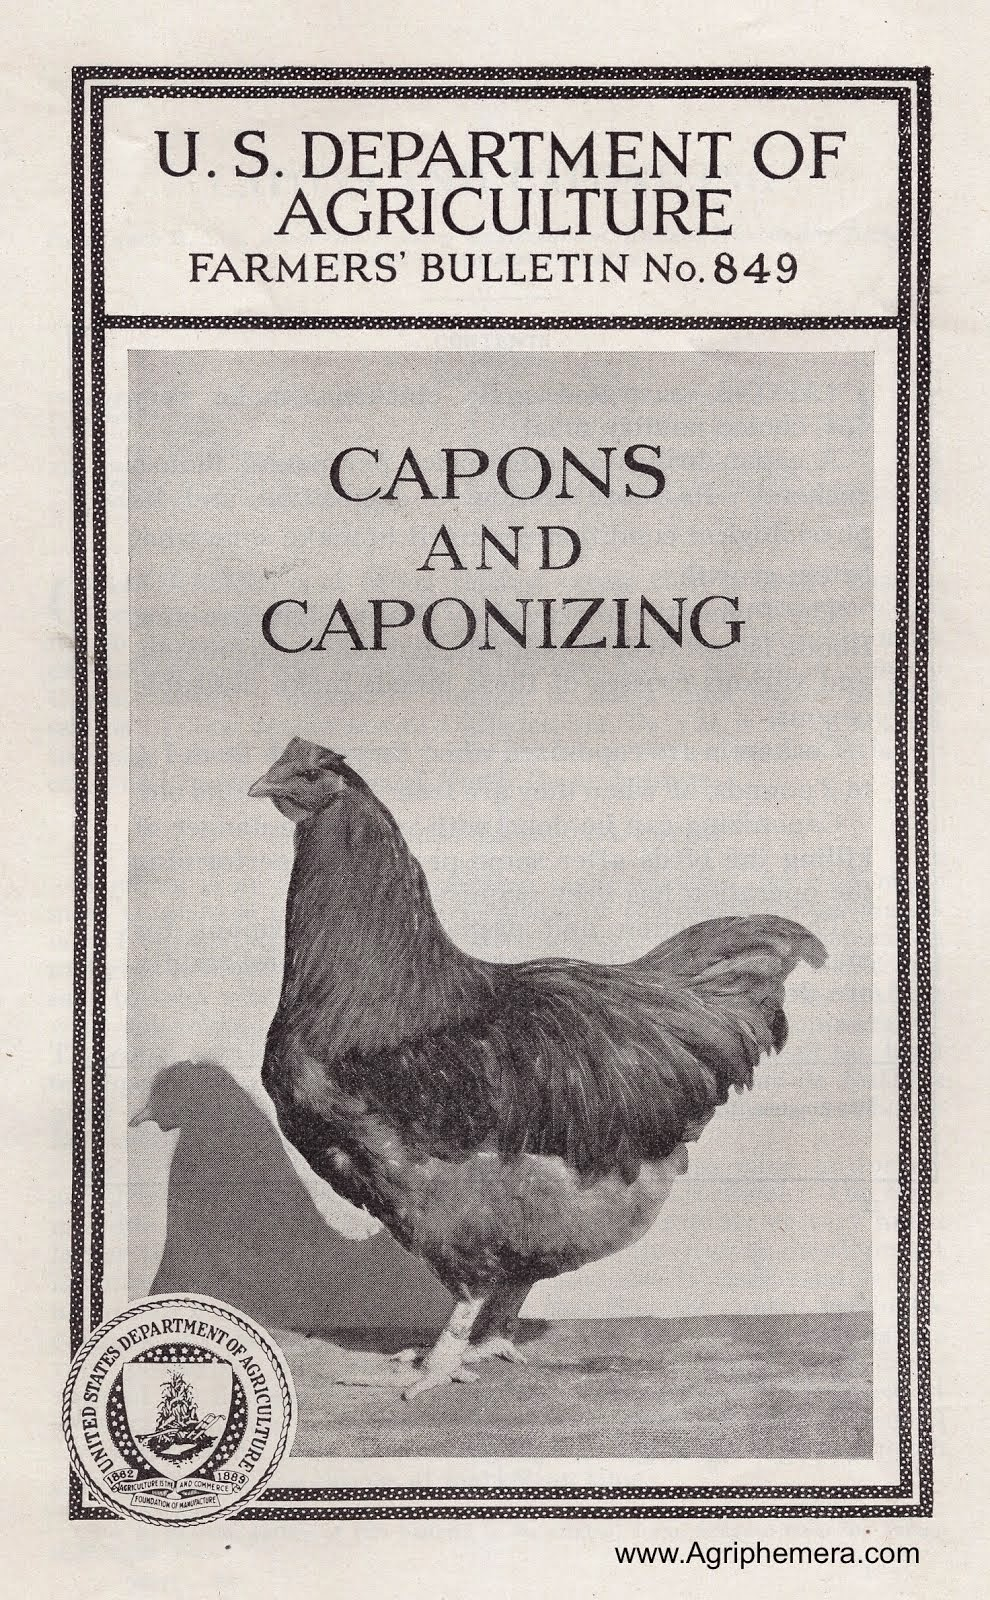 Capons And Caponizing (1932)